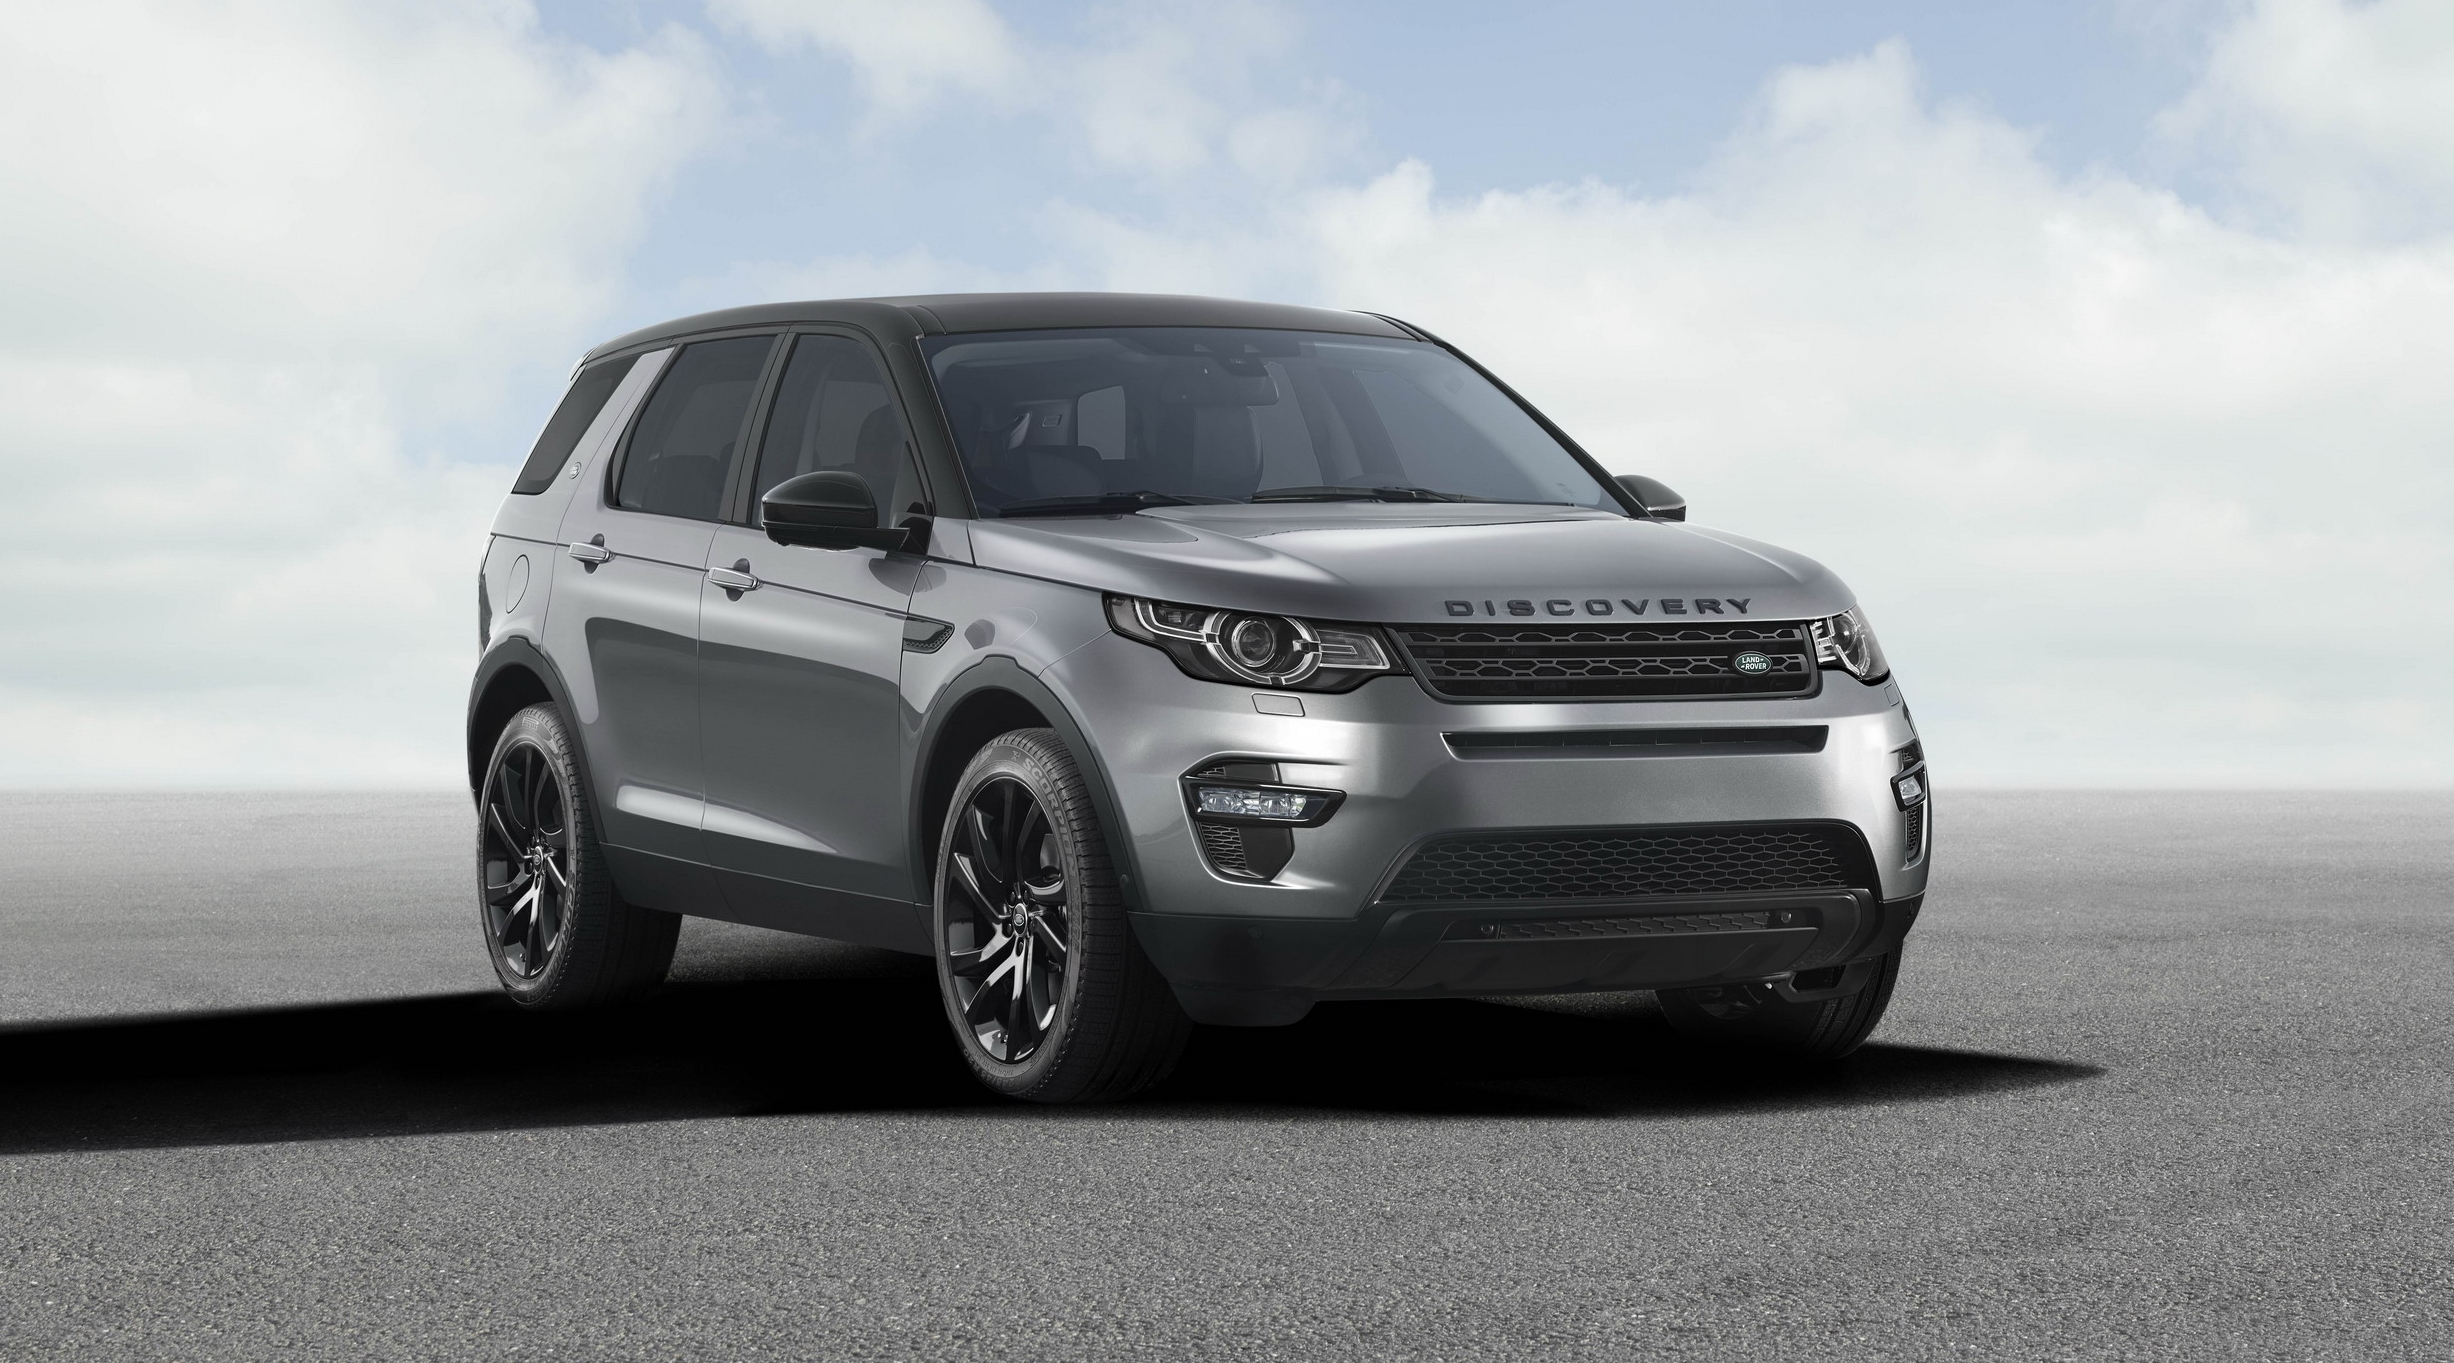 Range Rover New Model >> 2016 Land Rover Discovery Sport Review - Top Speed